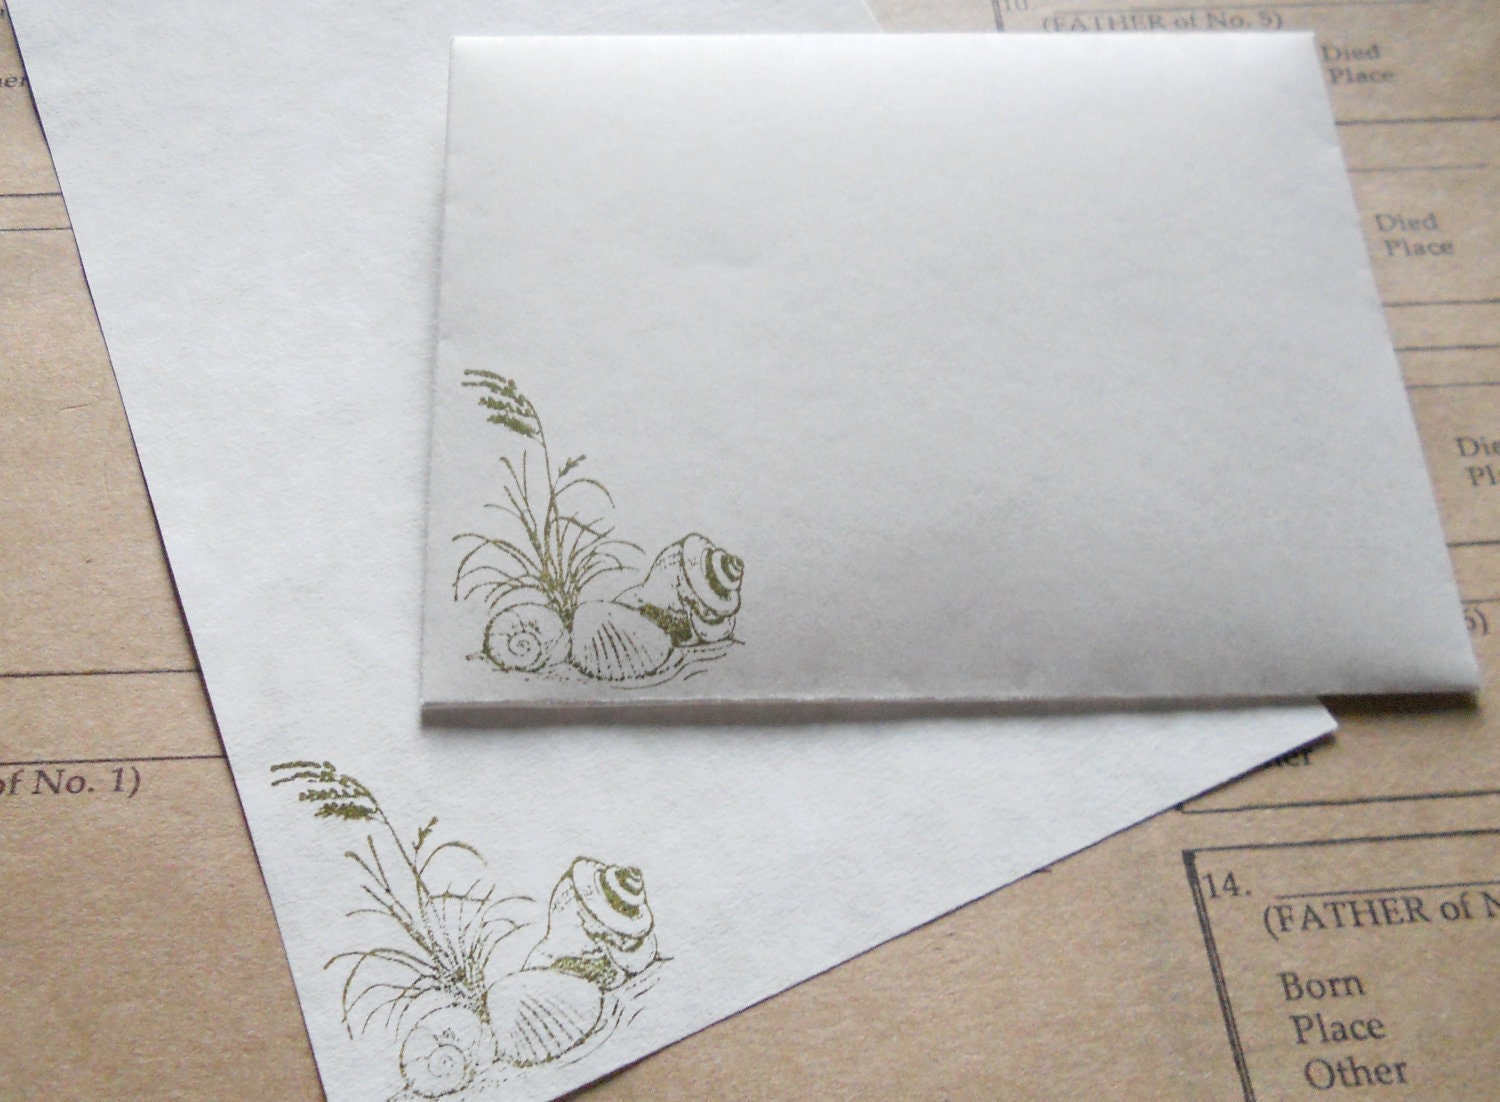 Parchment paper for writing